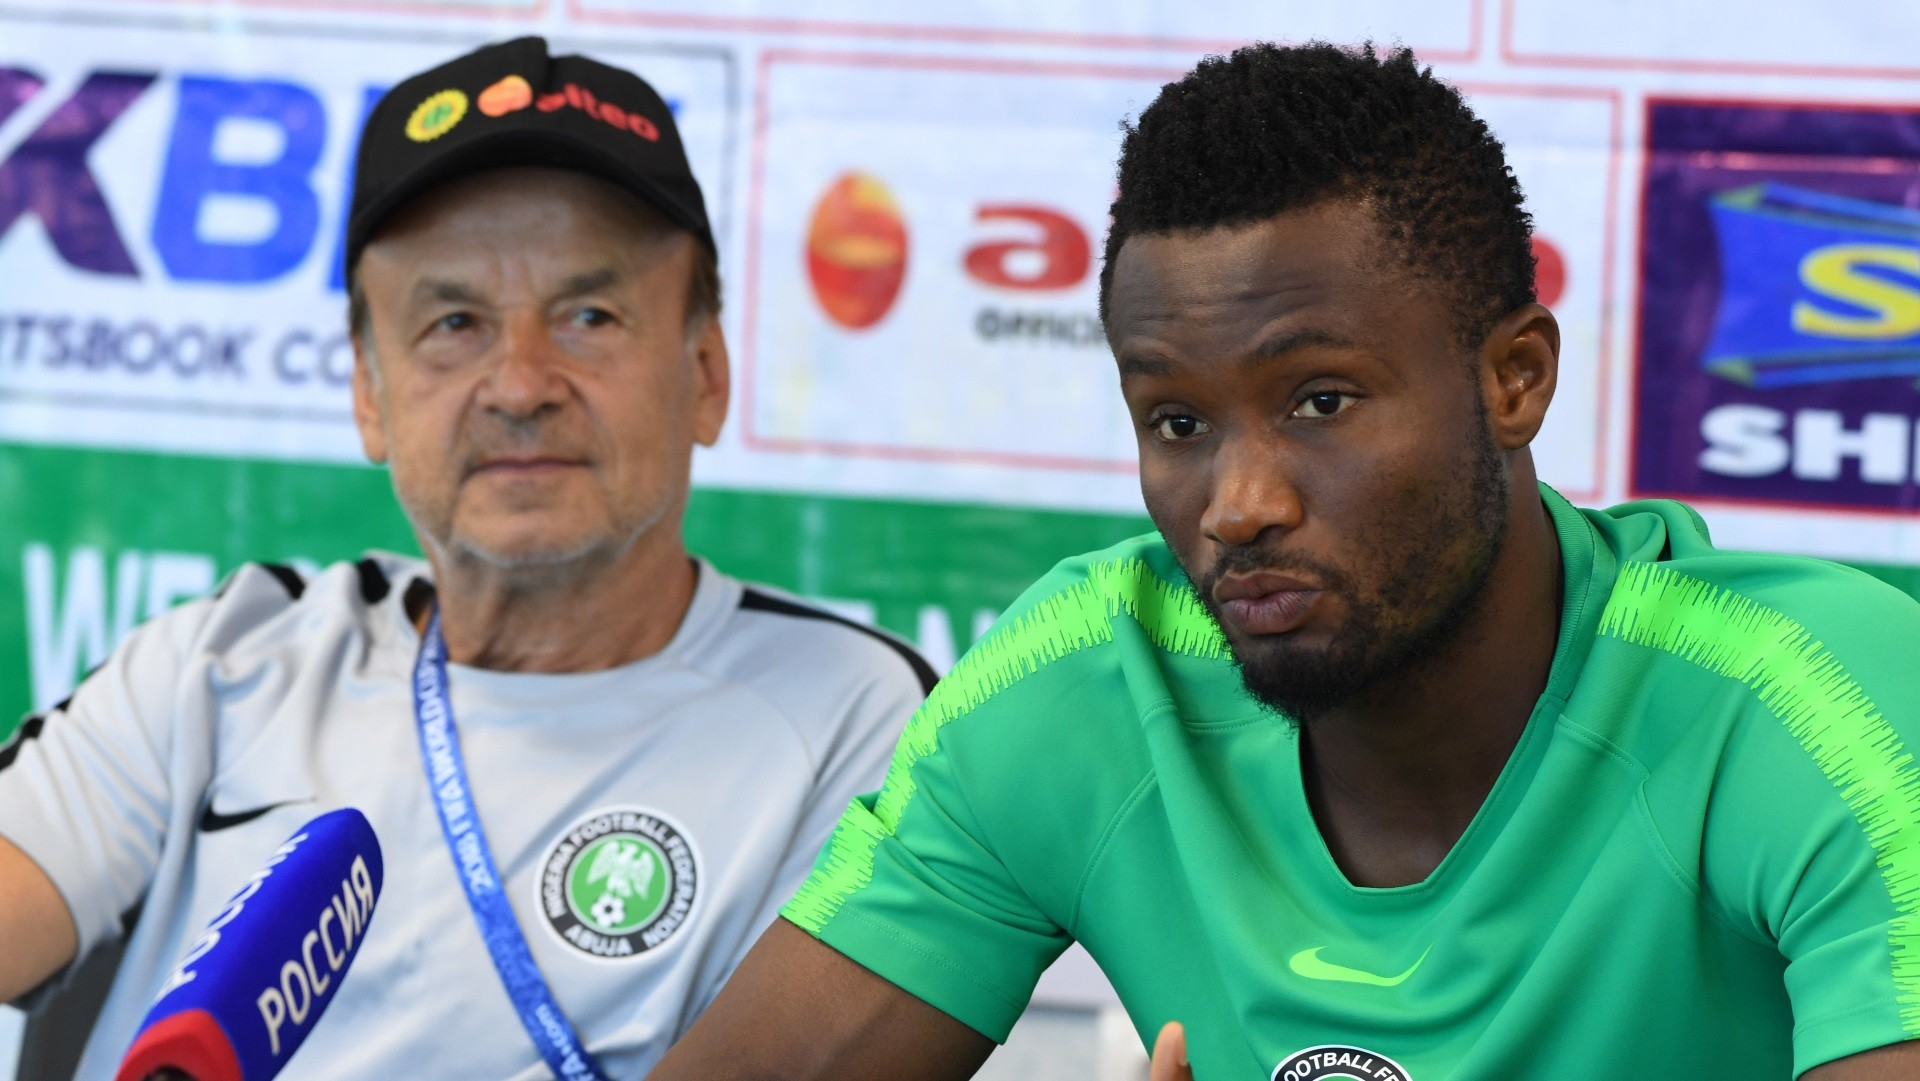 AFCON 2019: Mikel Obi Will Lead & Inspire Super Eagle's Young Guns - Gernot Rohr 1